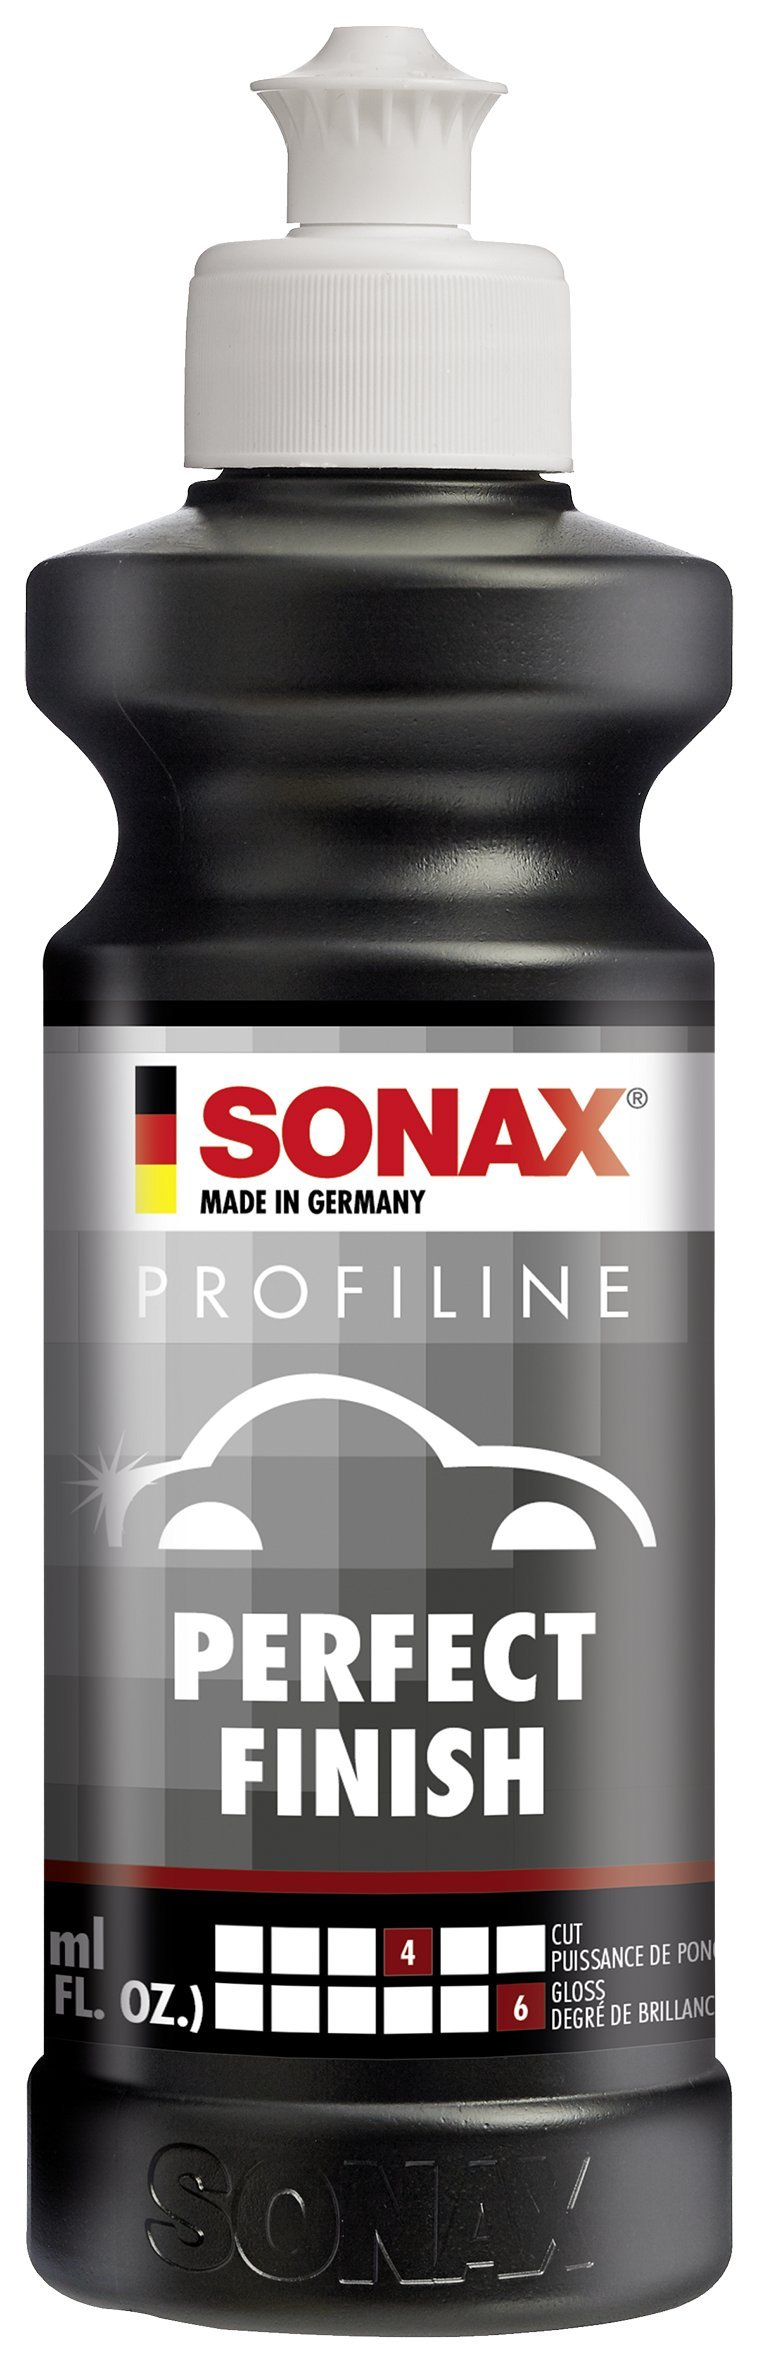 Sonax (224141) Profiline Perfect Finish - 8.45 fl. oz.